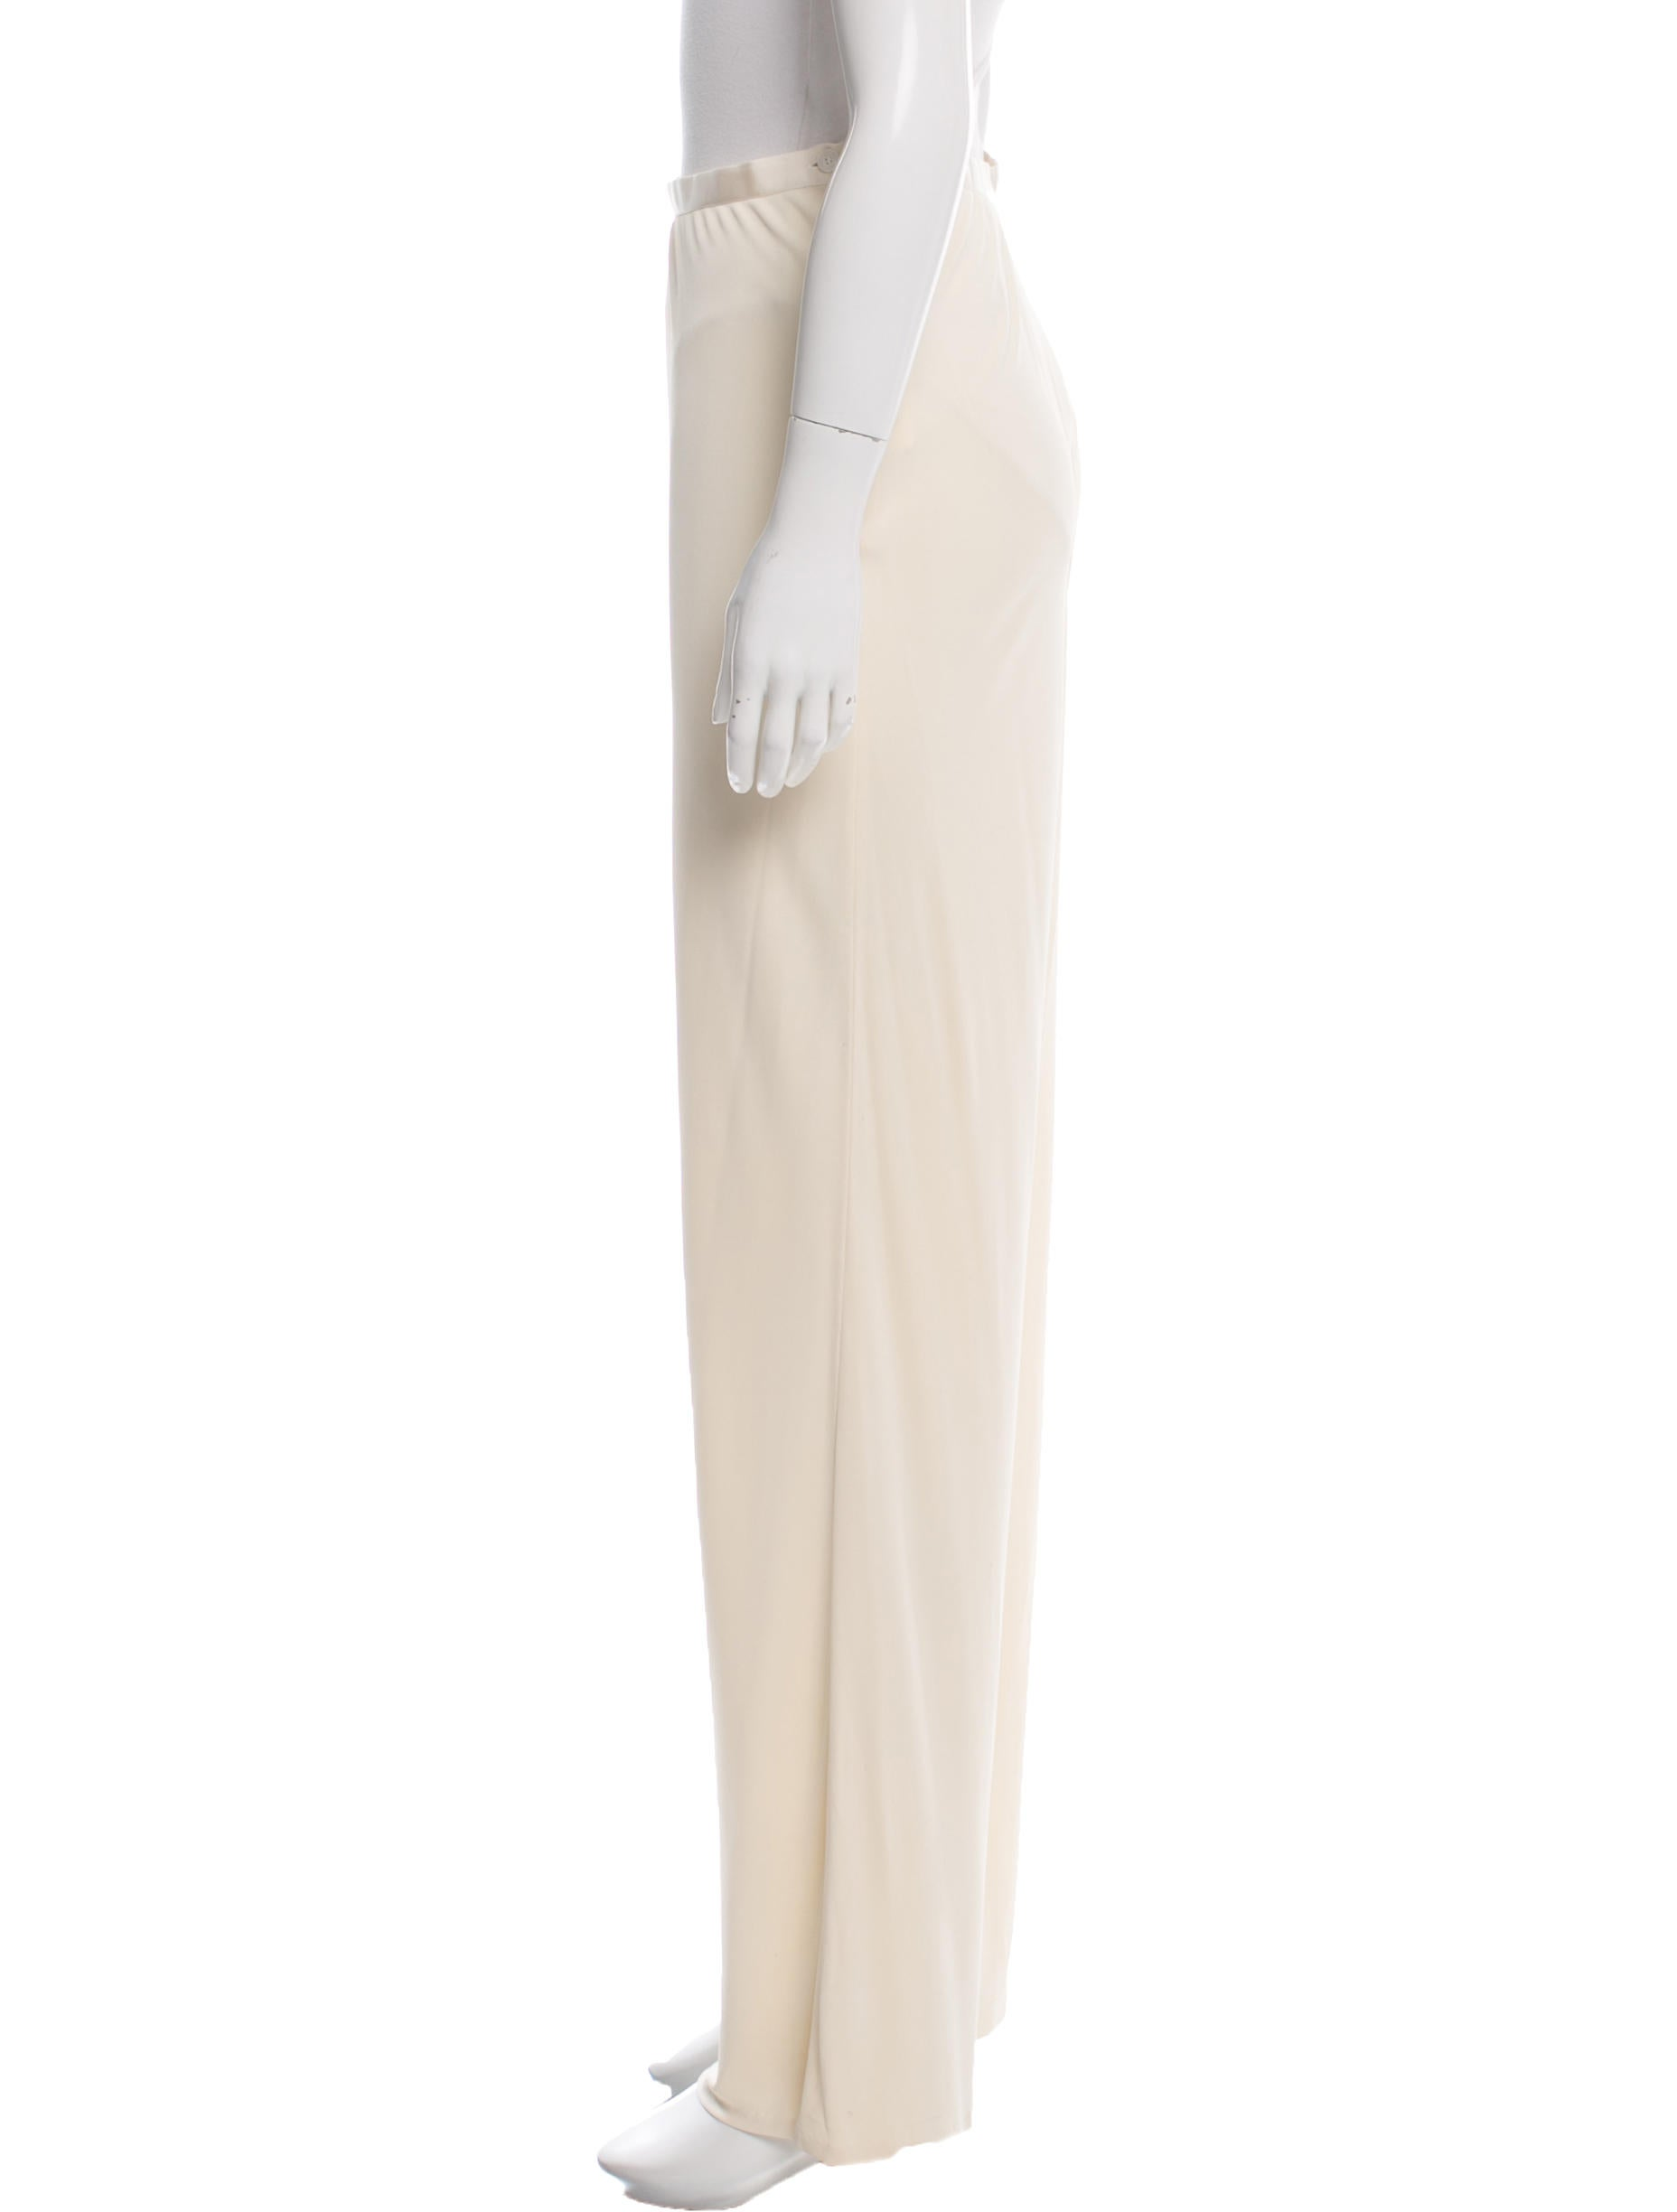 Cuddl Duds Softwear Stretch Wide Leg Pant is rated out of 5 by Rated 5 out of 5 by Nolagirl from Soft and wonderful I love these pants. I always prefer a wide leg and these are super soft super comfy and can go from casual to dressy/5(13).